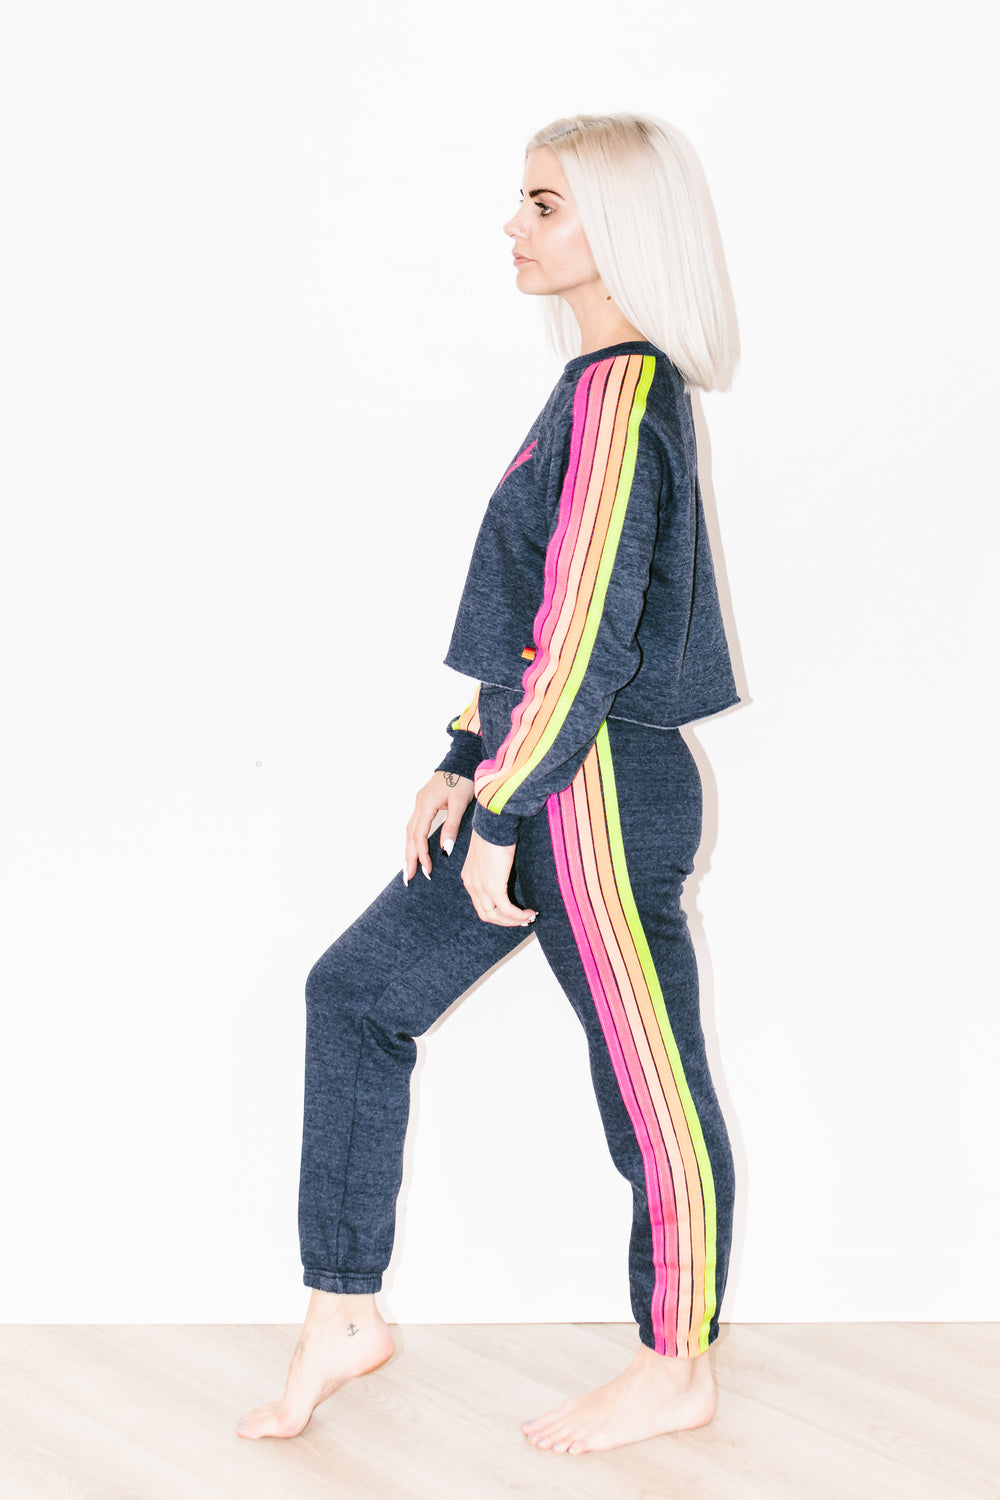 5 Stripe Sweatpants in Heather Navy Neon